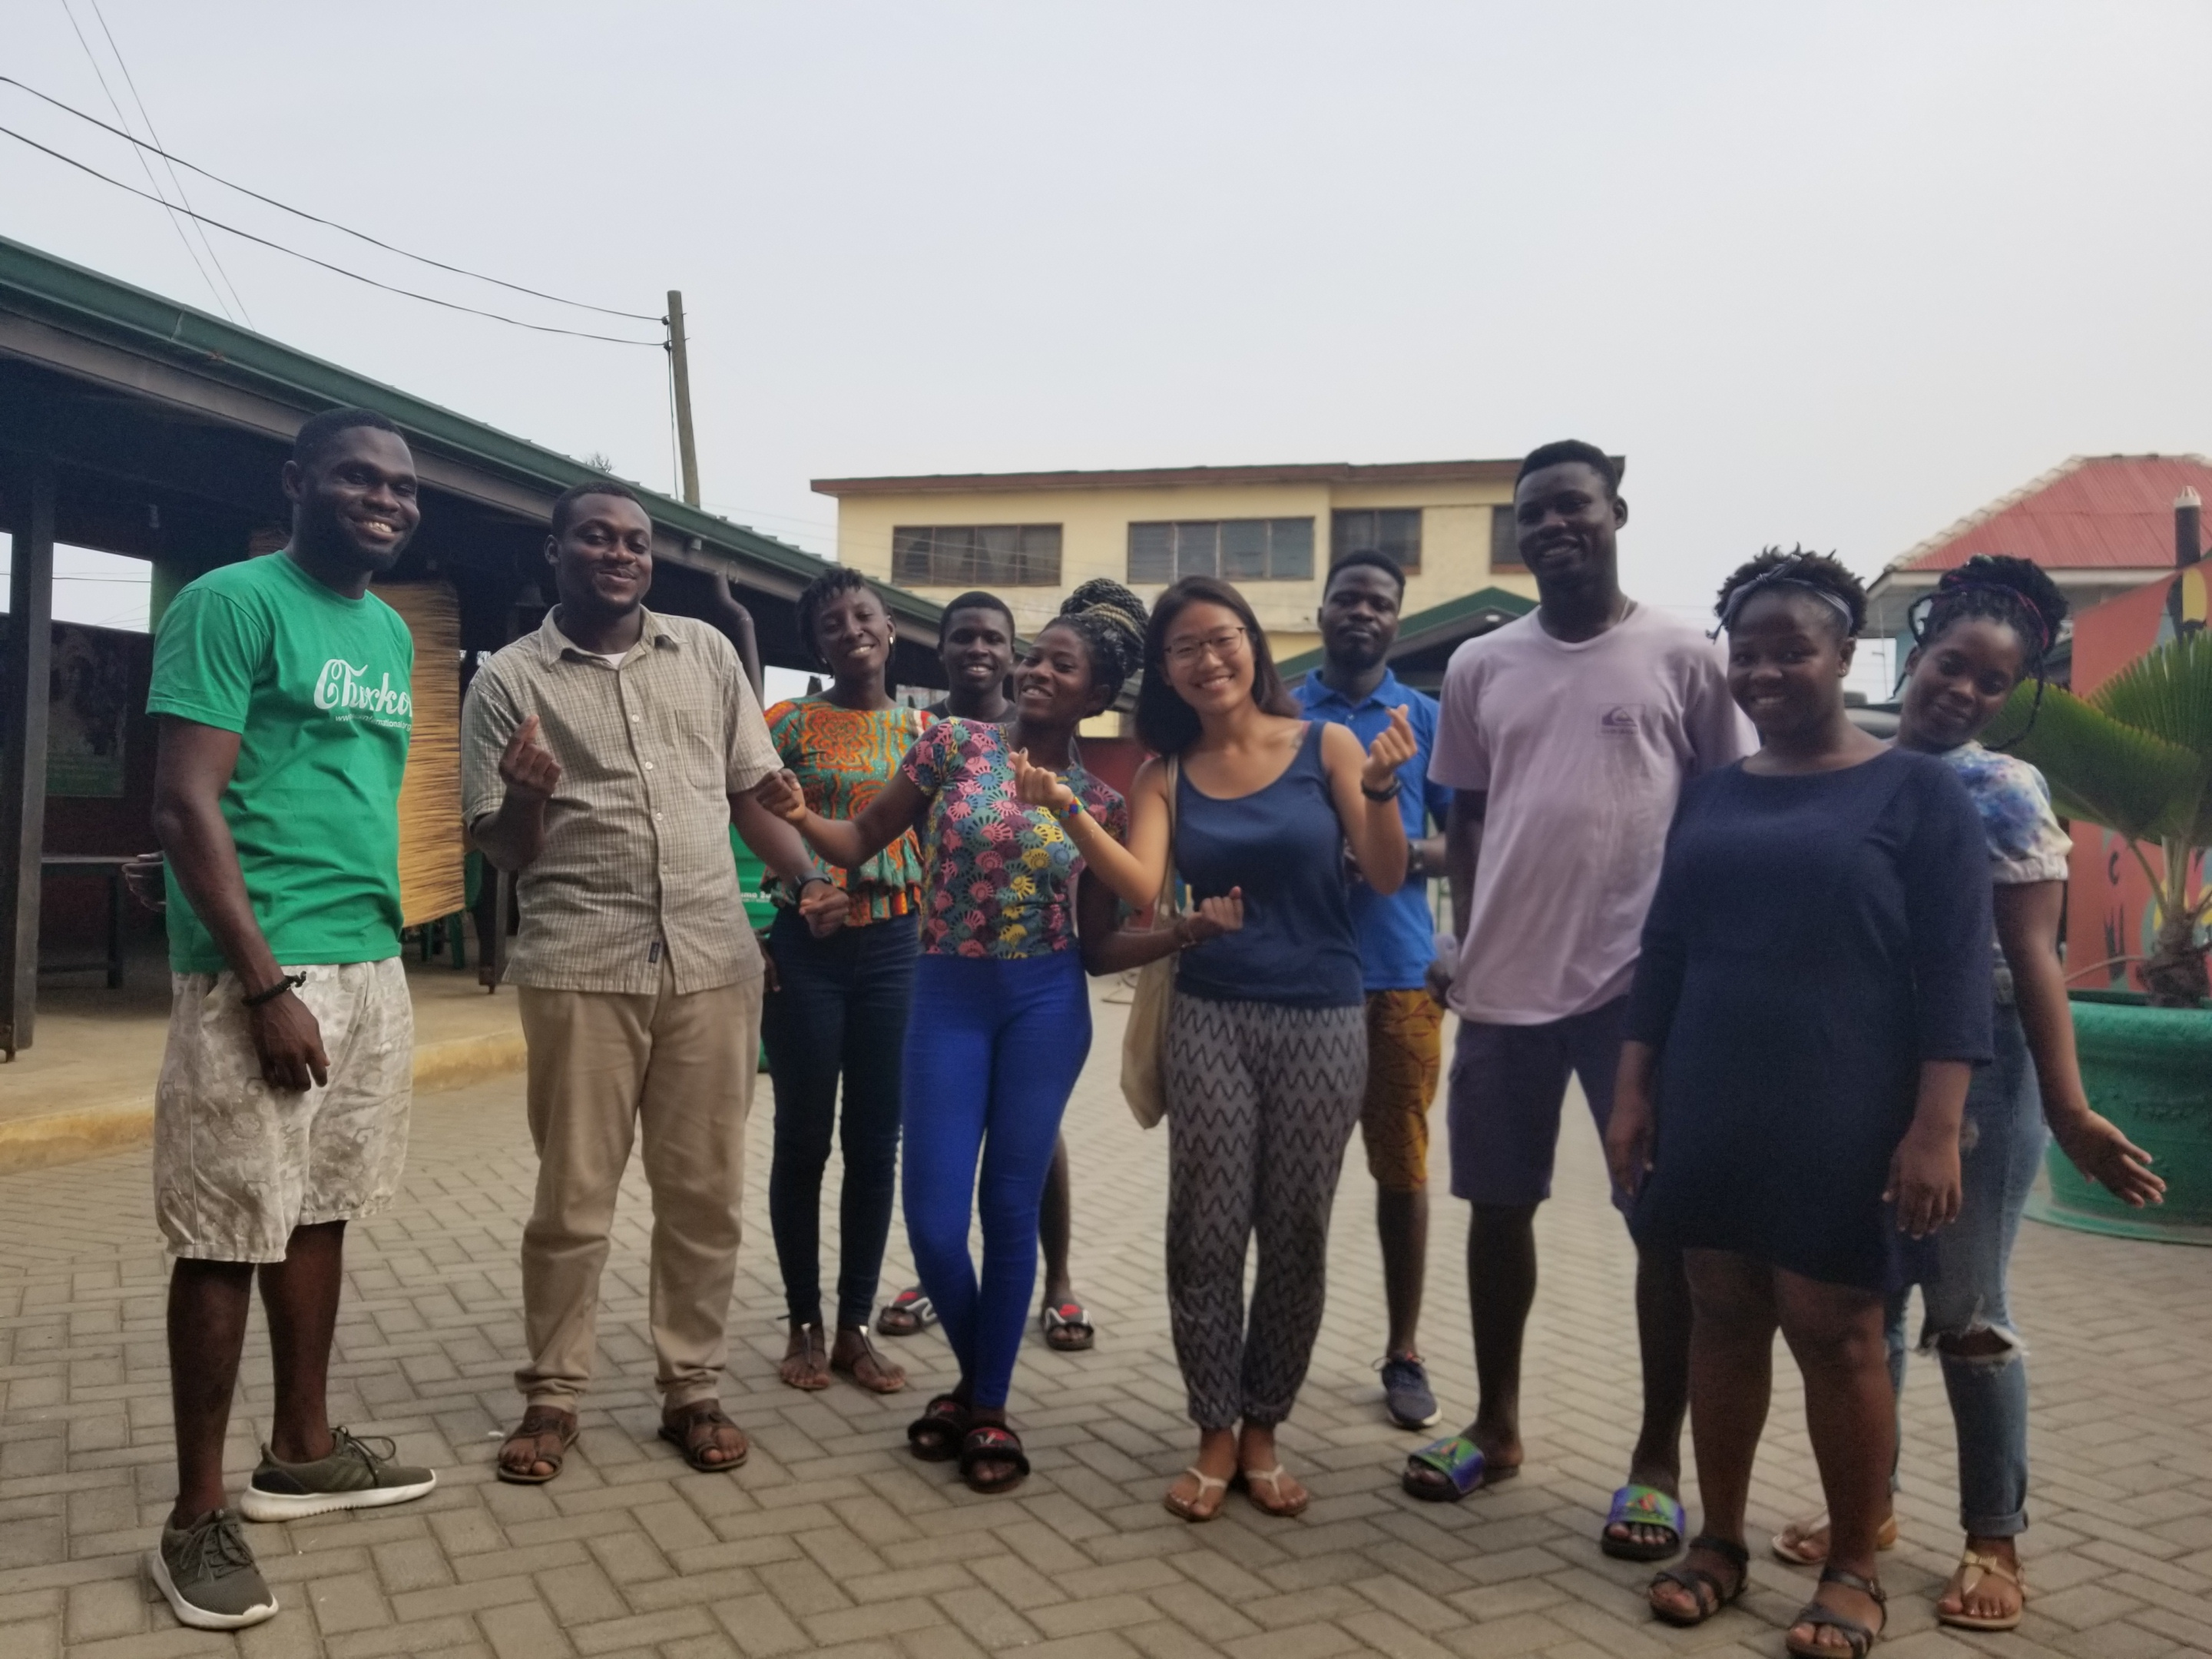 Kong with a group of friends and fellow volunteers in Ghana with the organization she volunteered at